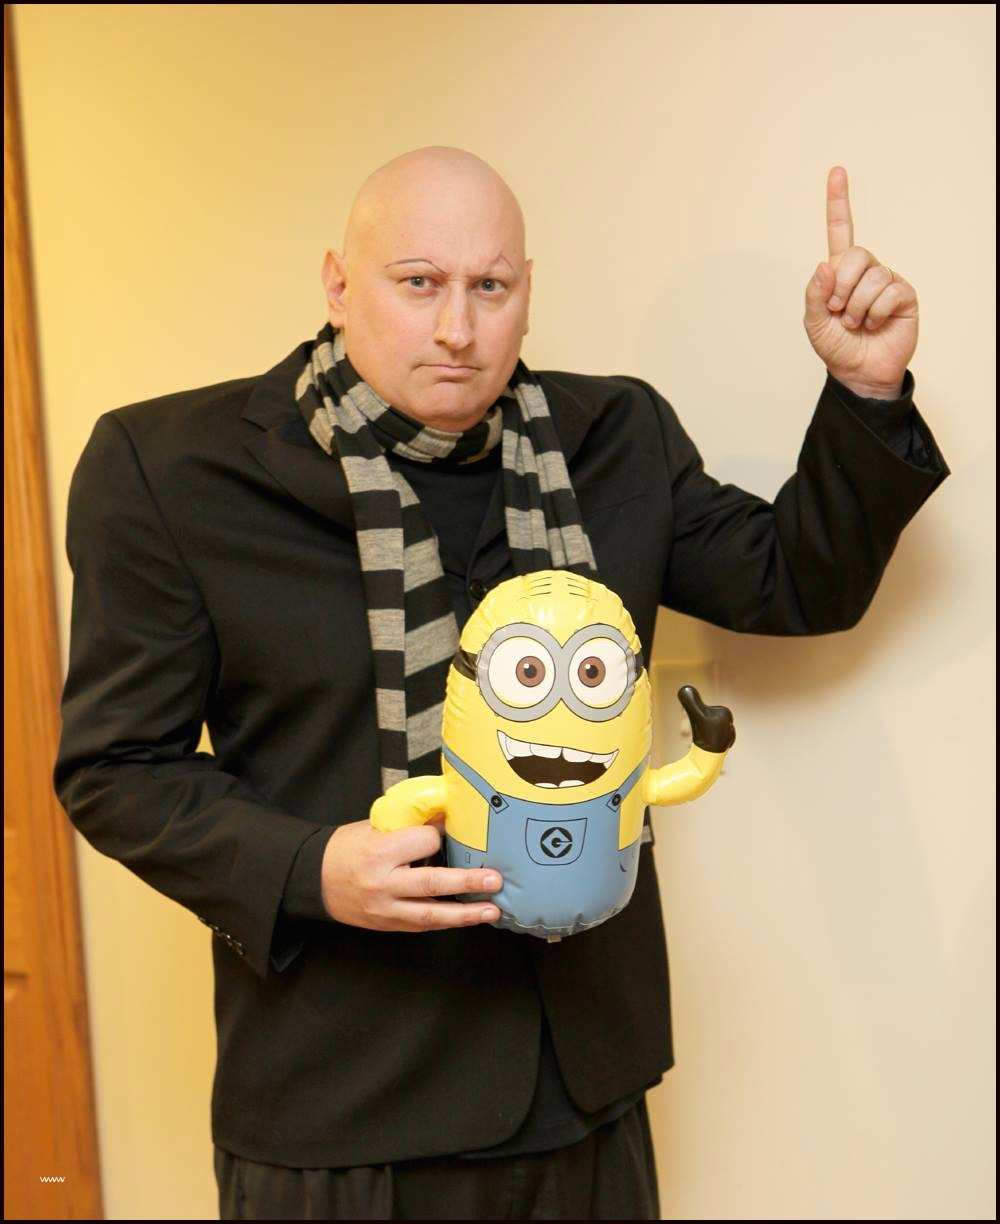 DIY Gru costume from Despicable Me